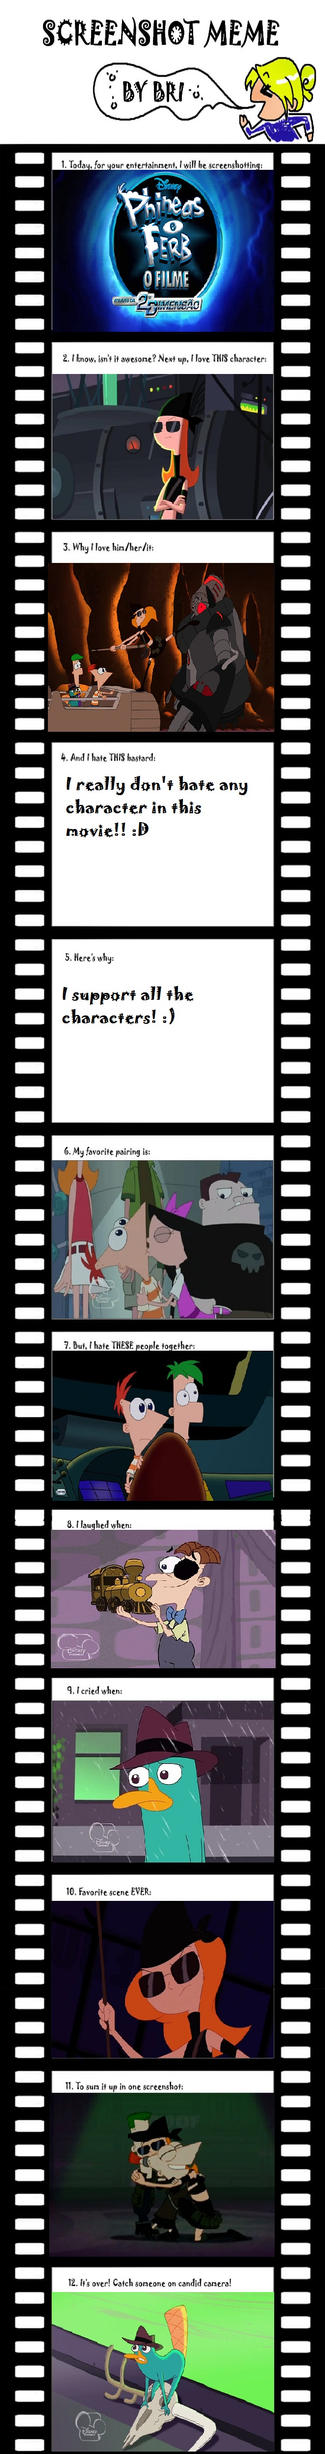 Phineas and Ferb ATSD meme by AlternativeCandace99